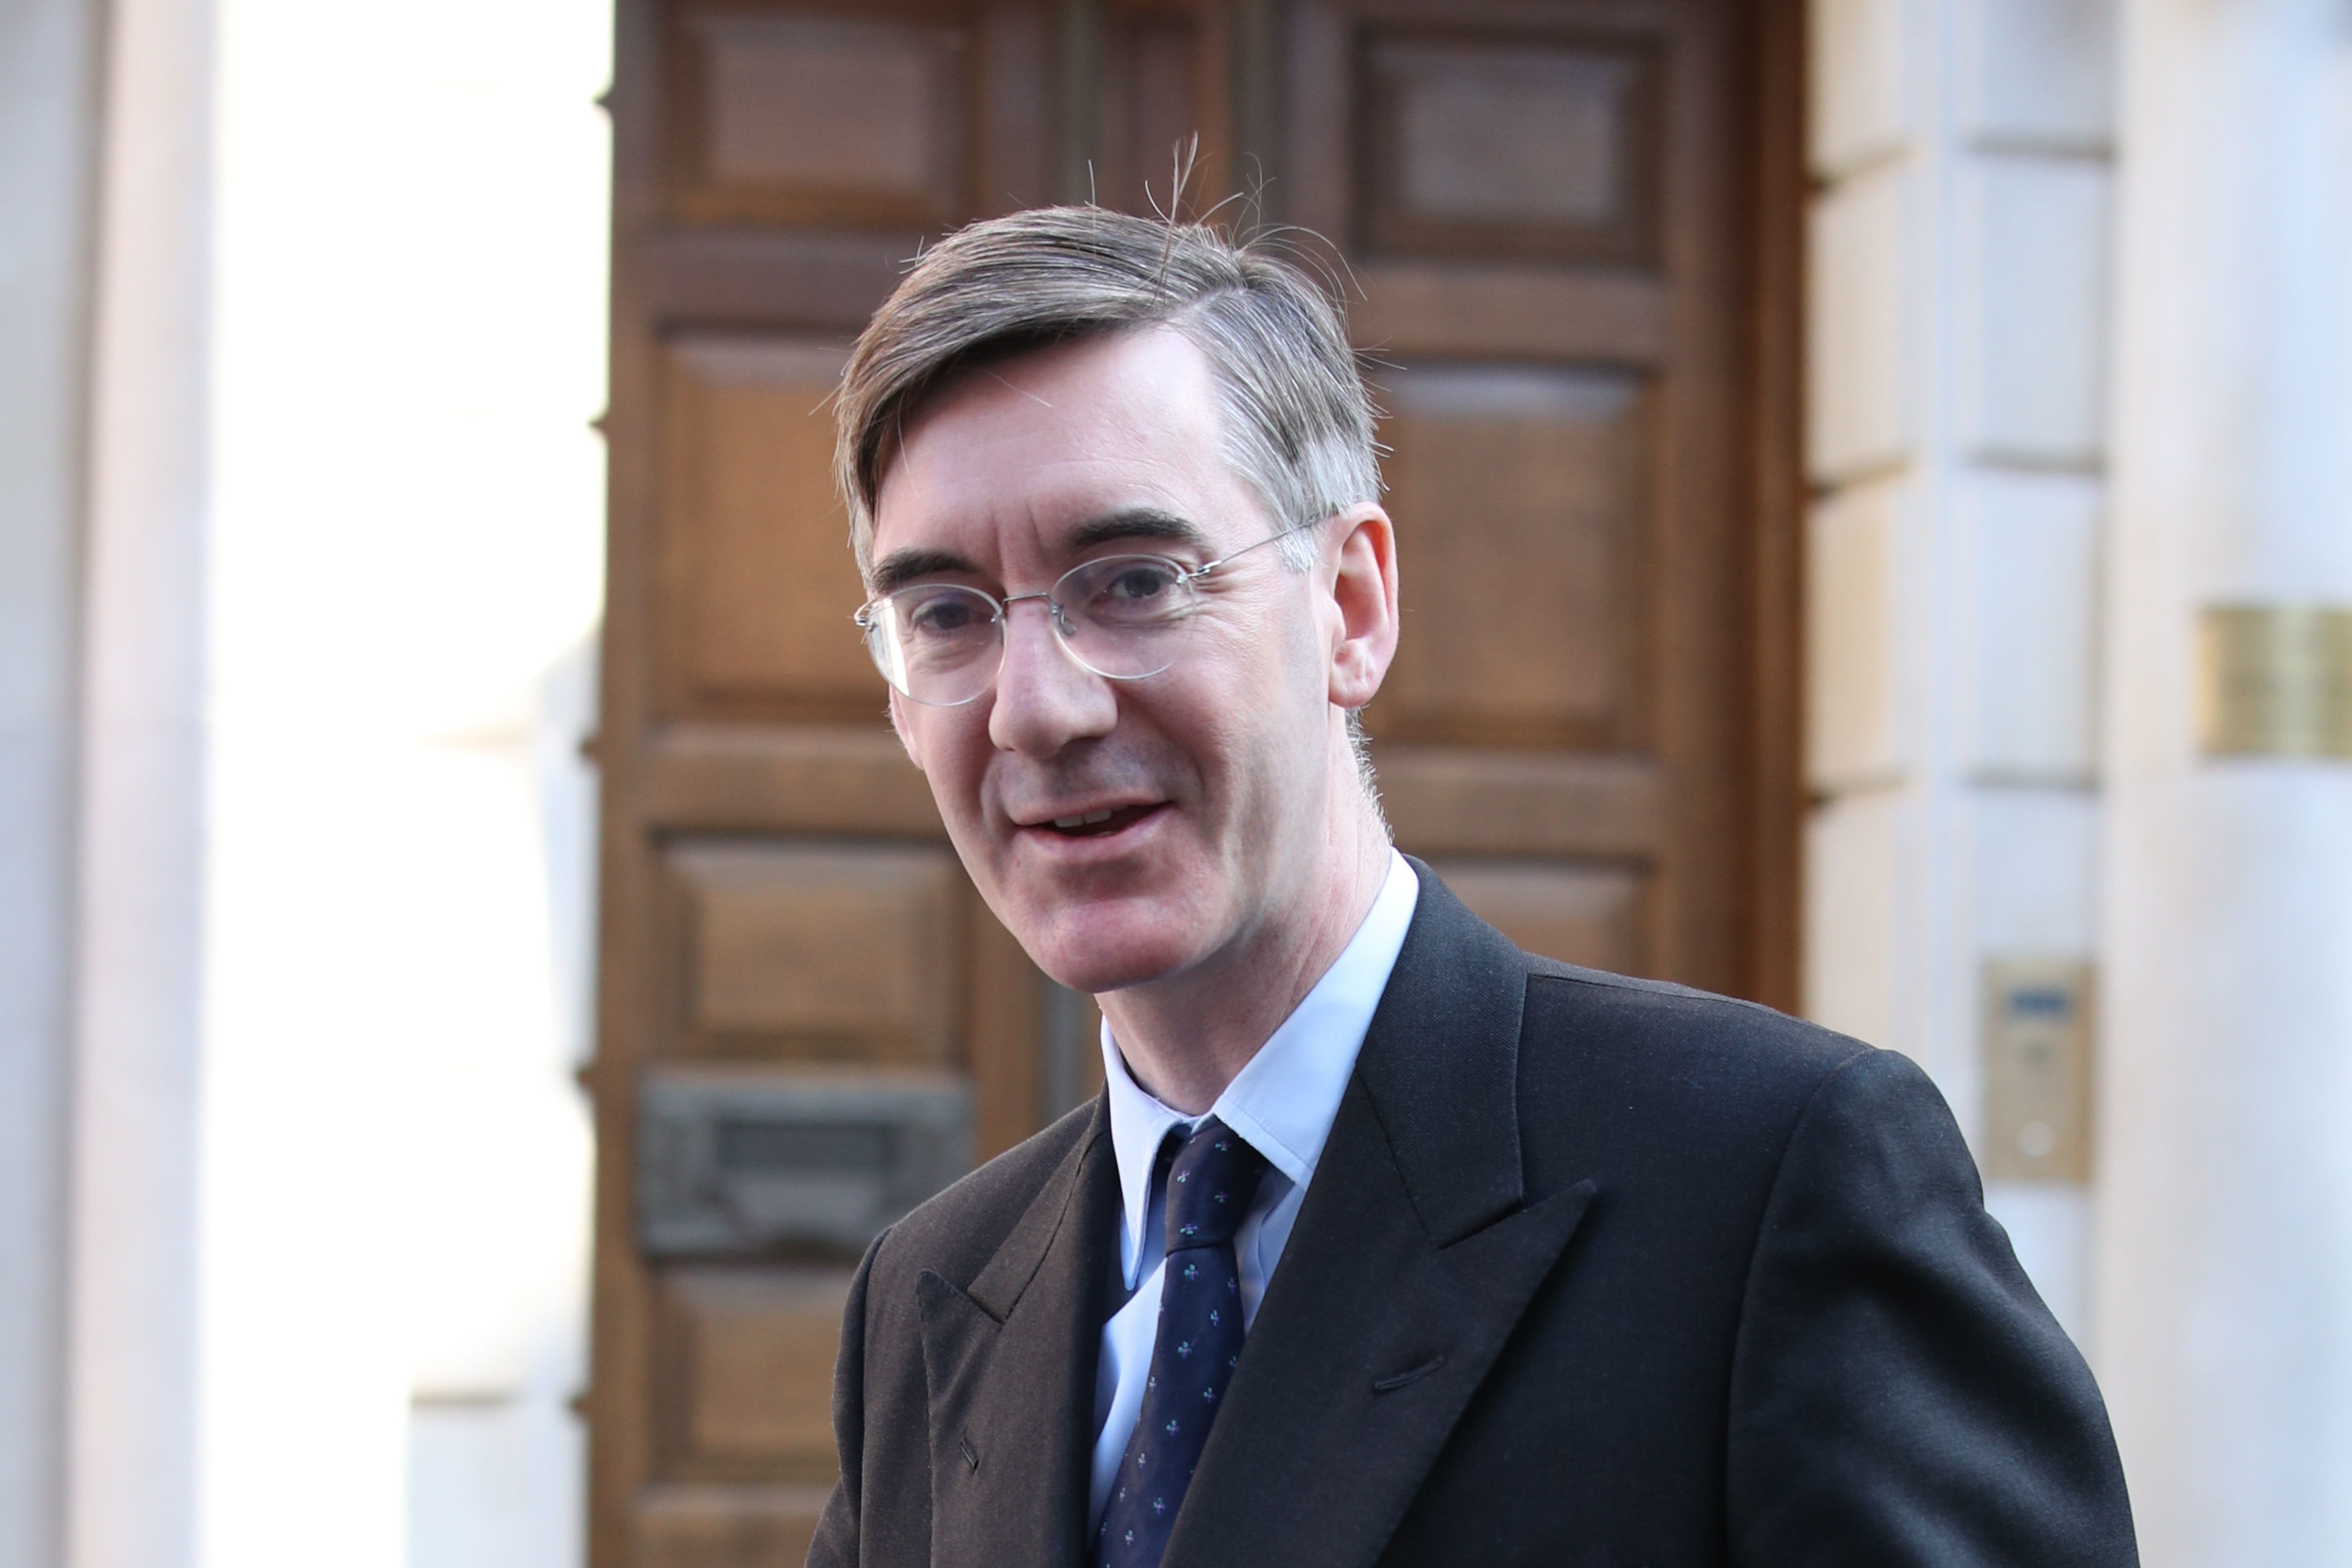 File photo dated 11/04/199 of leader of the House of Commons Jacob Rees-Mogg, who has issued a set of rules for staff in his office to follow, including a list of banned words and a requirement to use imperial measurements. PRESS ASSOCIATION Photo. Issue date: Friday July 26, 2019. Mr Rees-Mogg, who was brought into the Government by Boris Johnson on Wednesday, wasted little time in issuing the guidance to staff. See PA story POLITICS Tories ReesMogg . Photo credit should read: Yui Mok/PA Wire